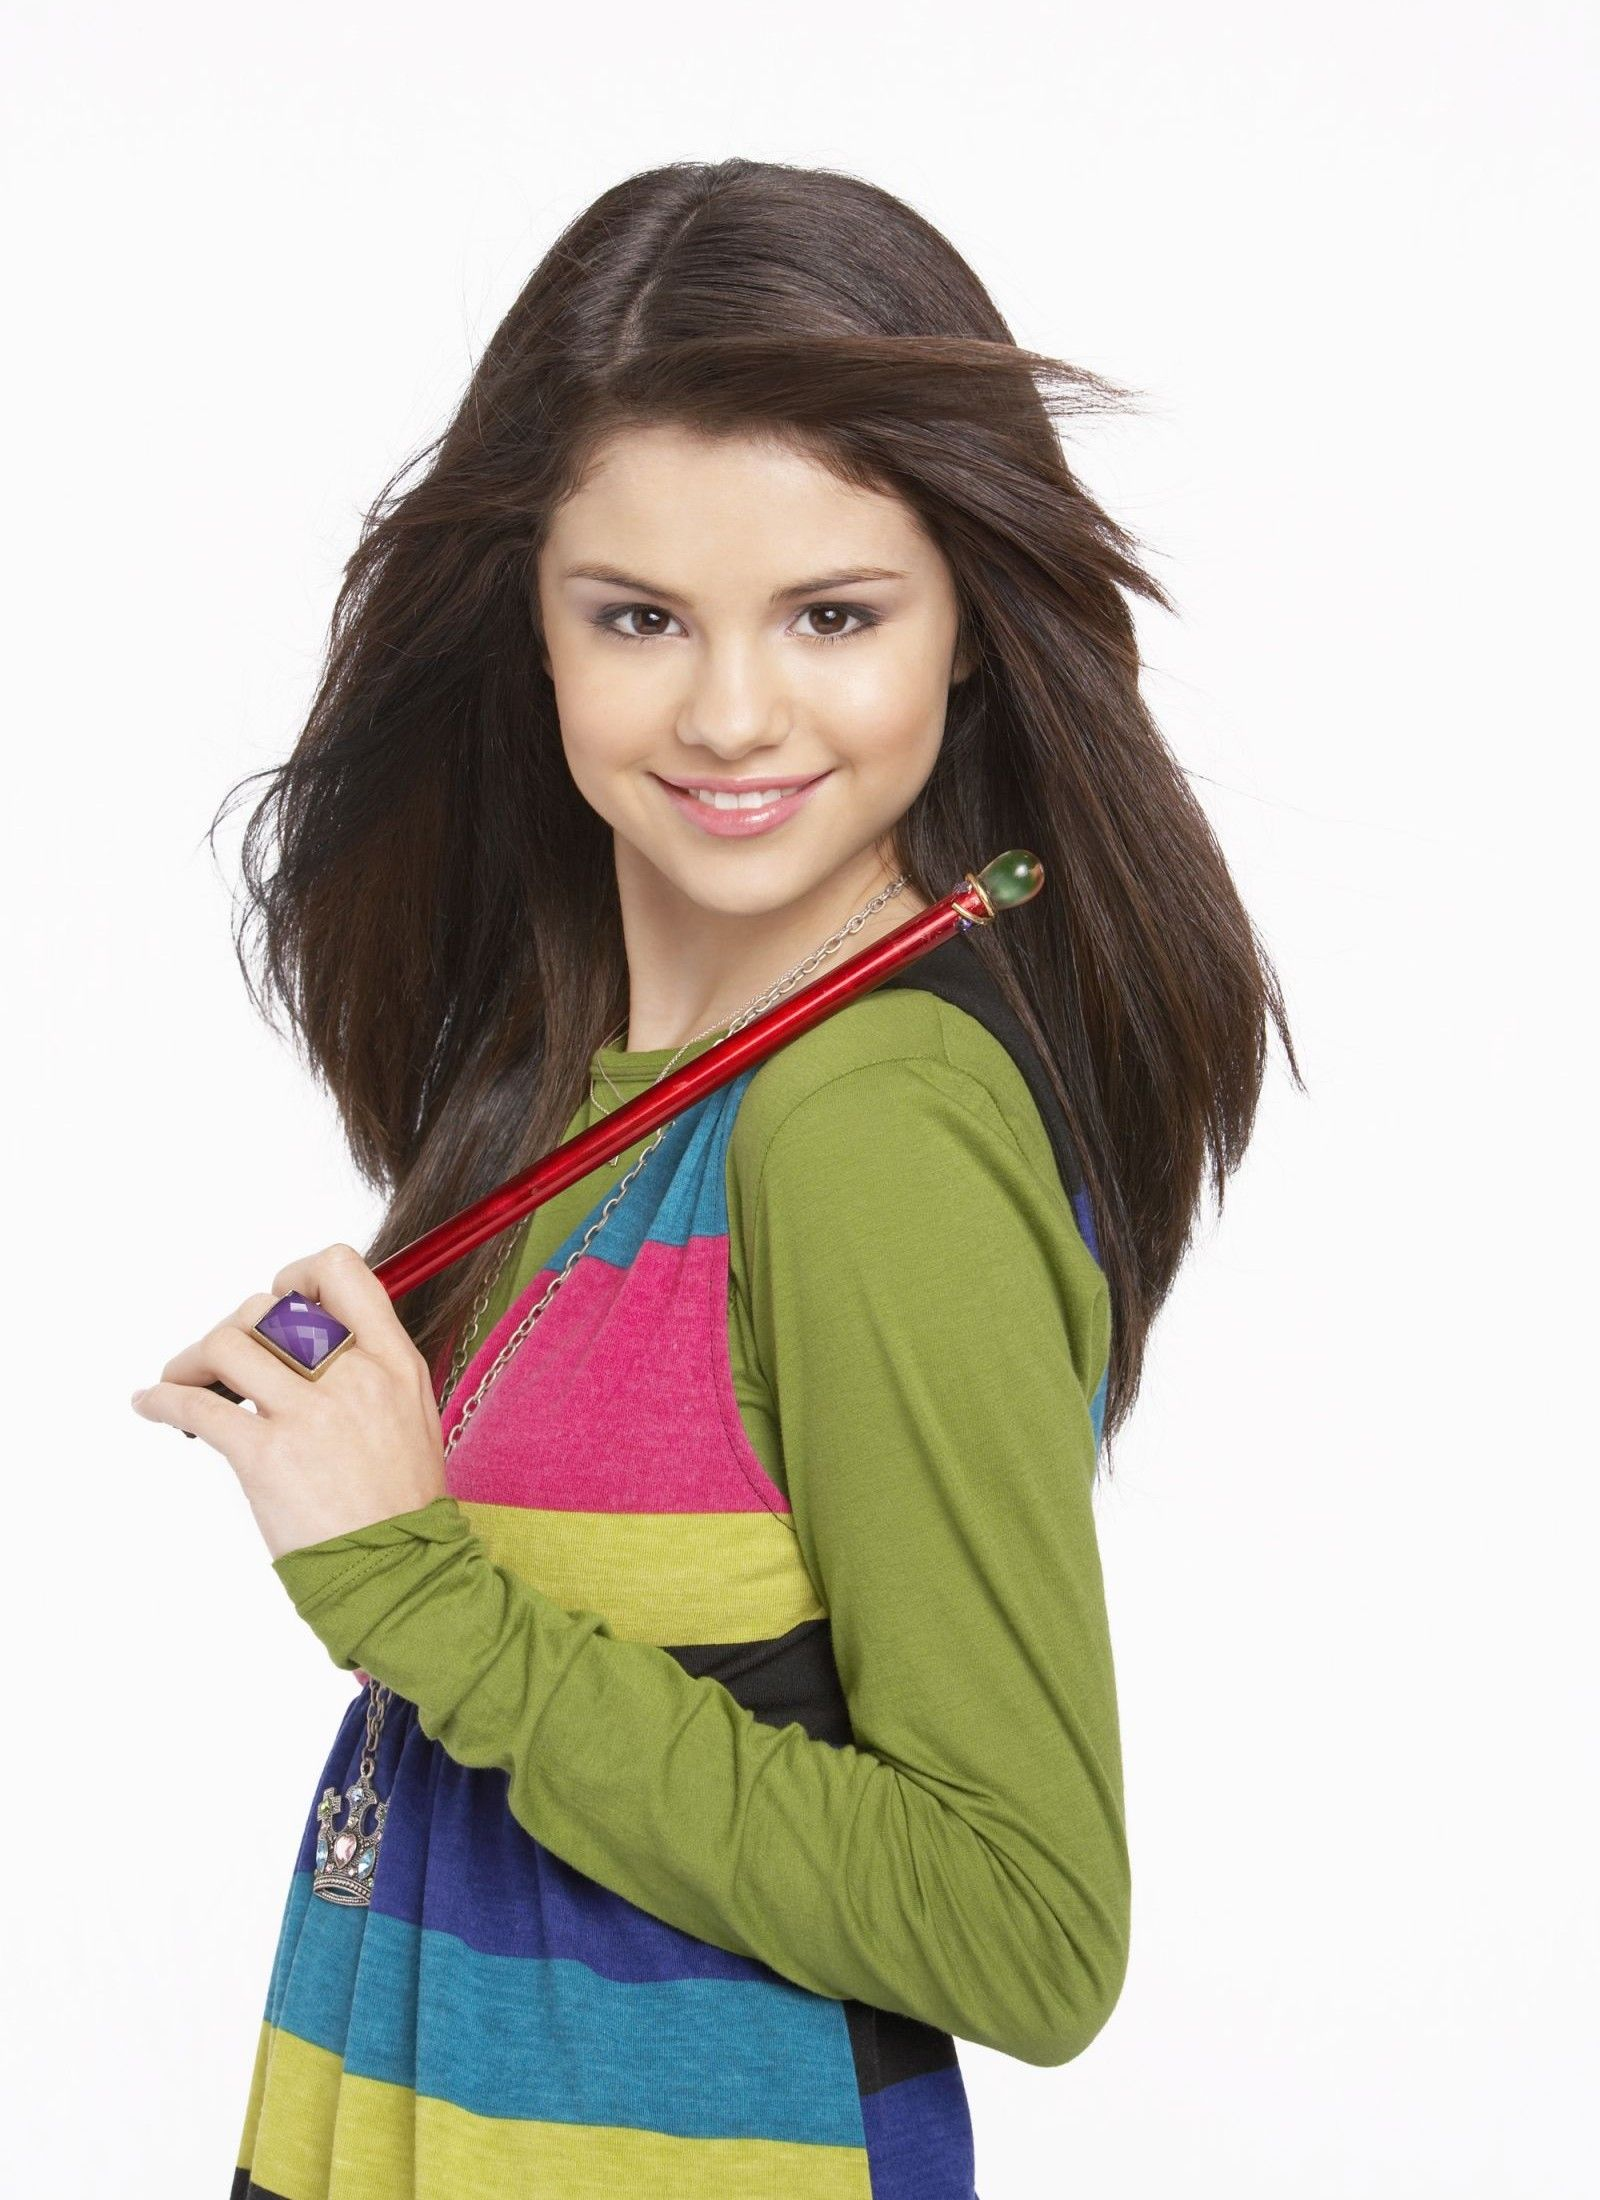 14f1d96b324 Selena Gomez as Alex Russo in Wizards Of Waverly Place. (Wizards Of Waverly  Place photo shoot.)